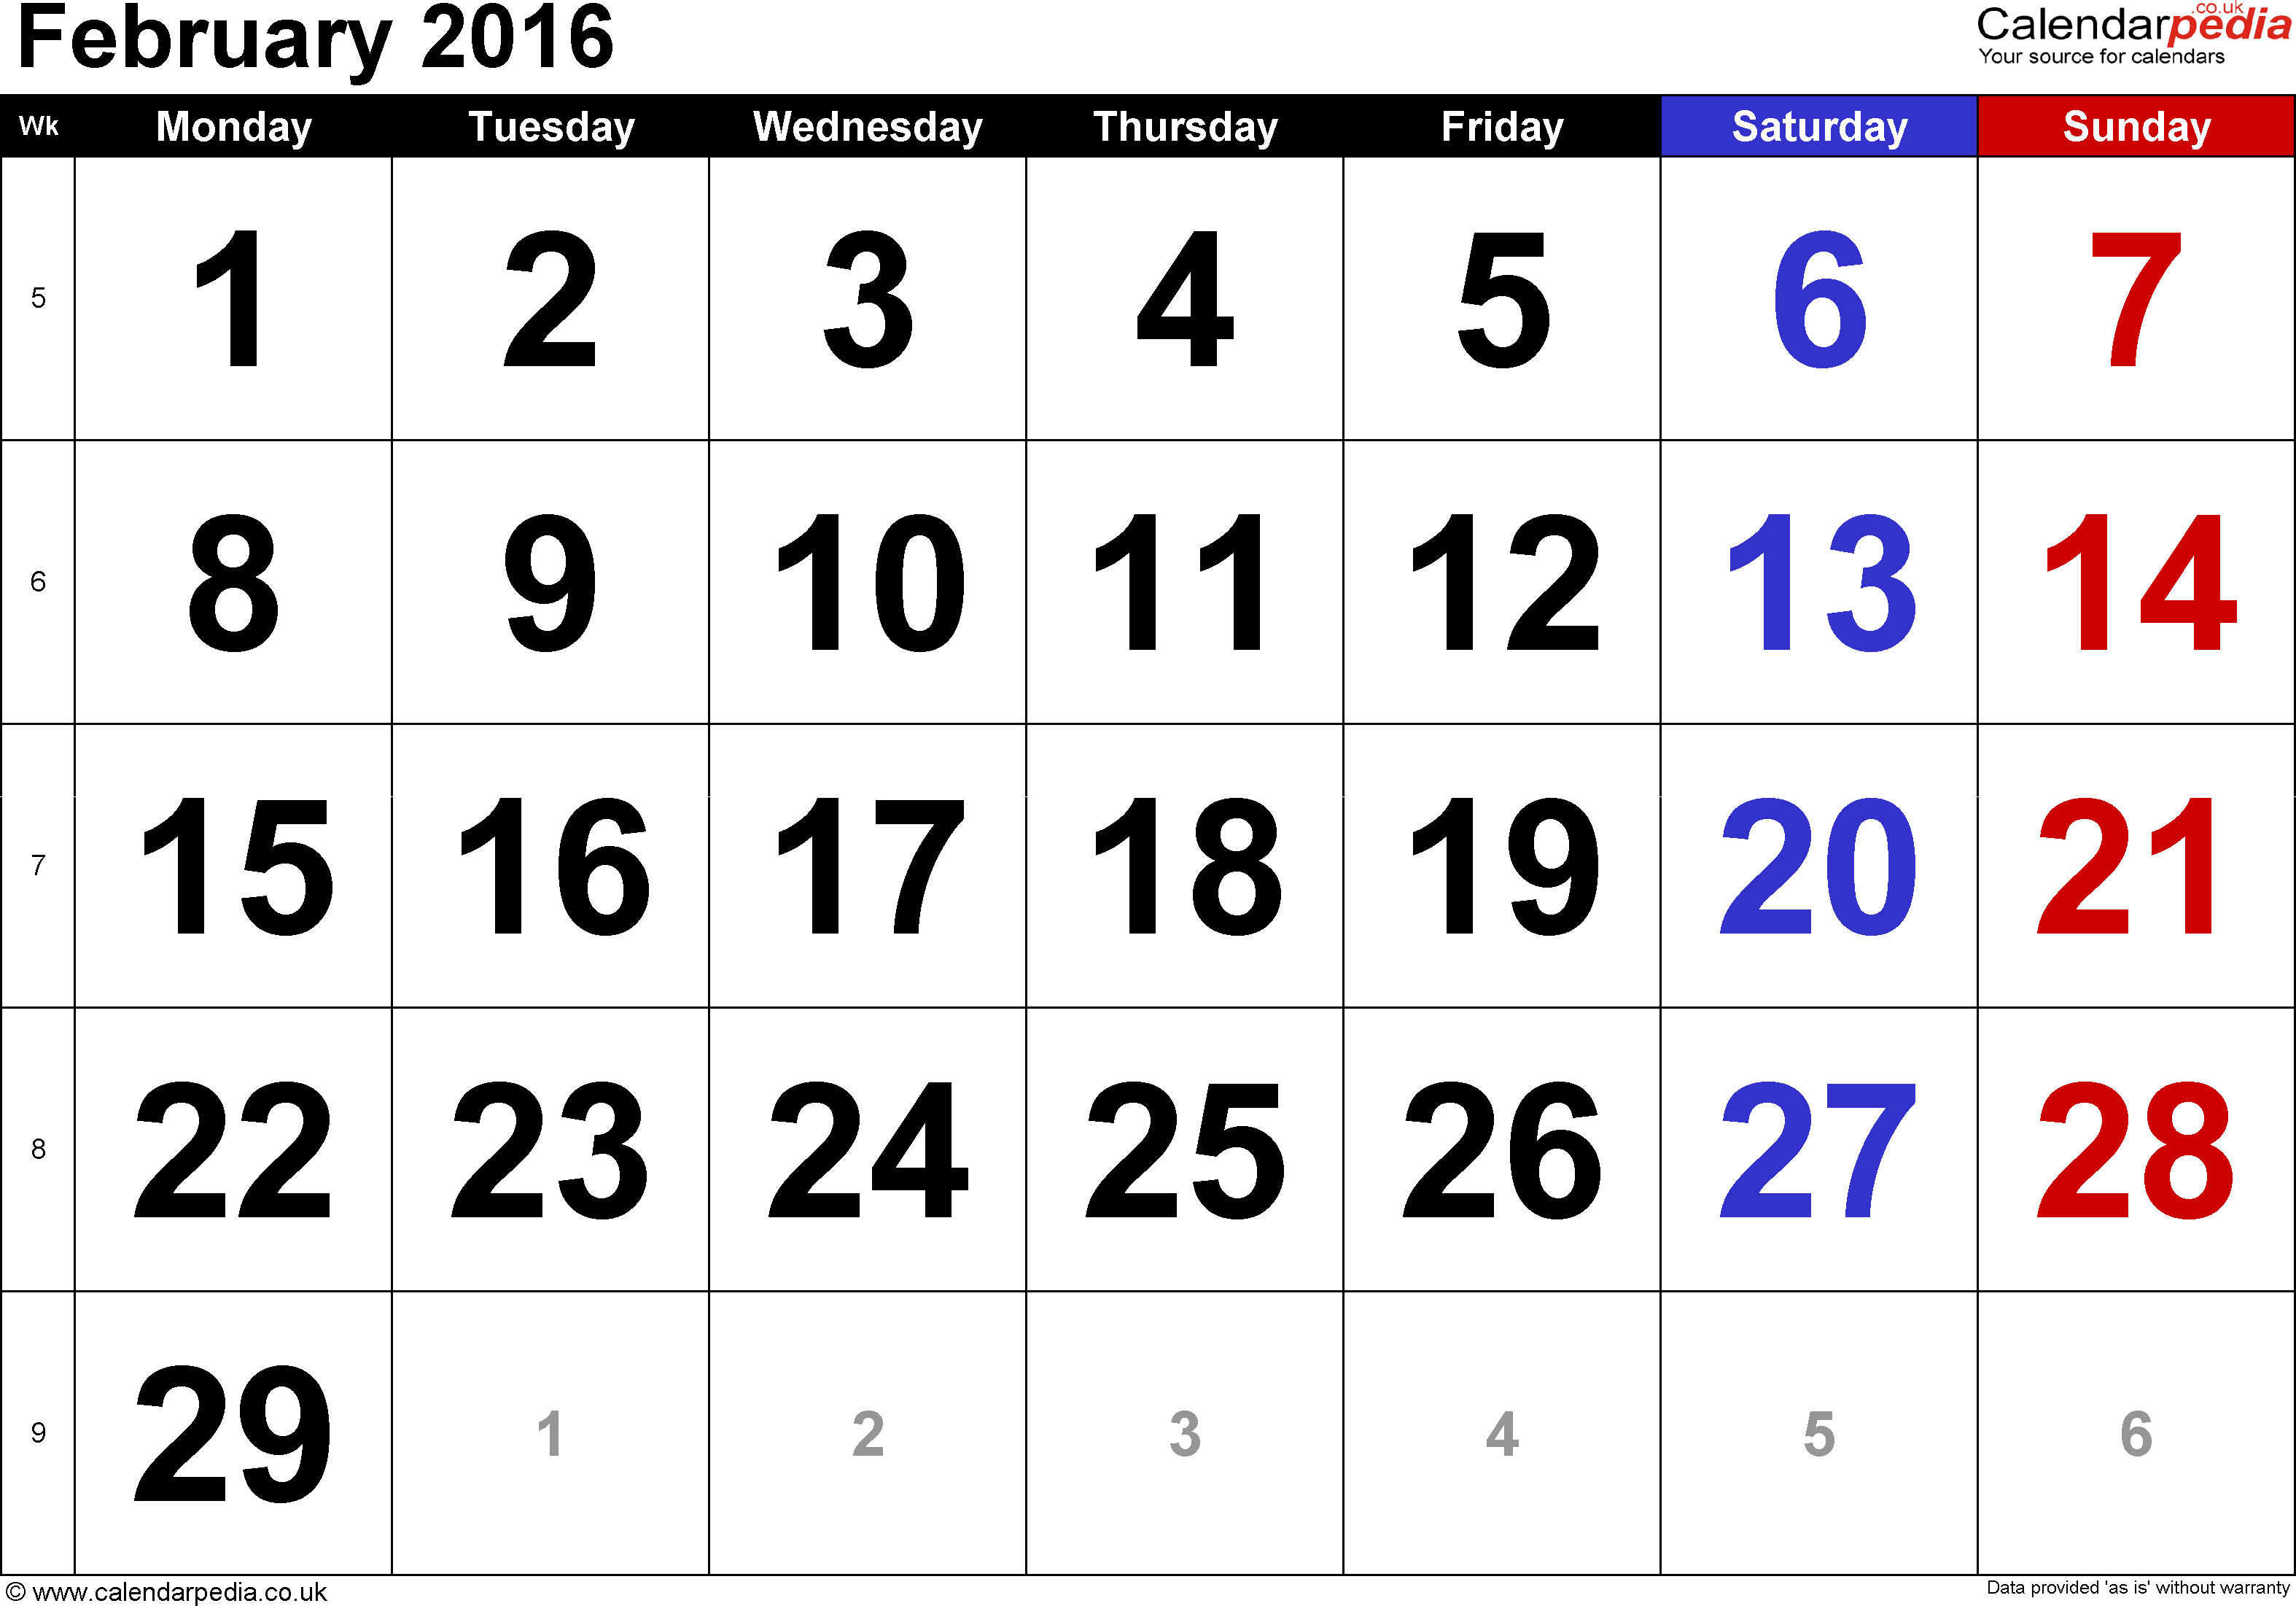 Calendar February 2016, landscape orientation, large numerals, 1 page, with UK bank holidays and week numbers